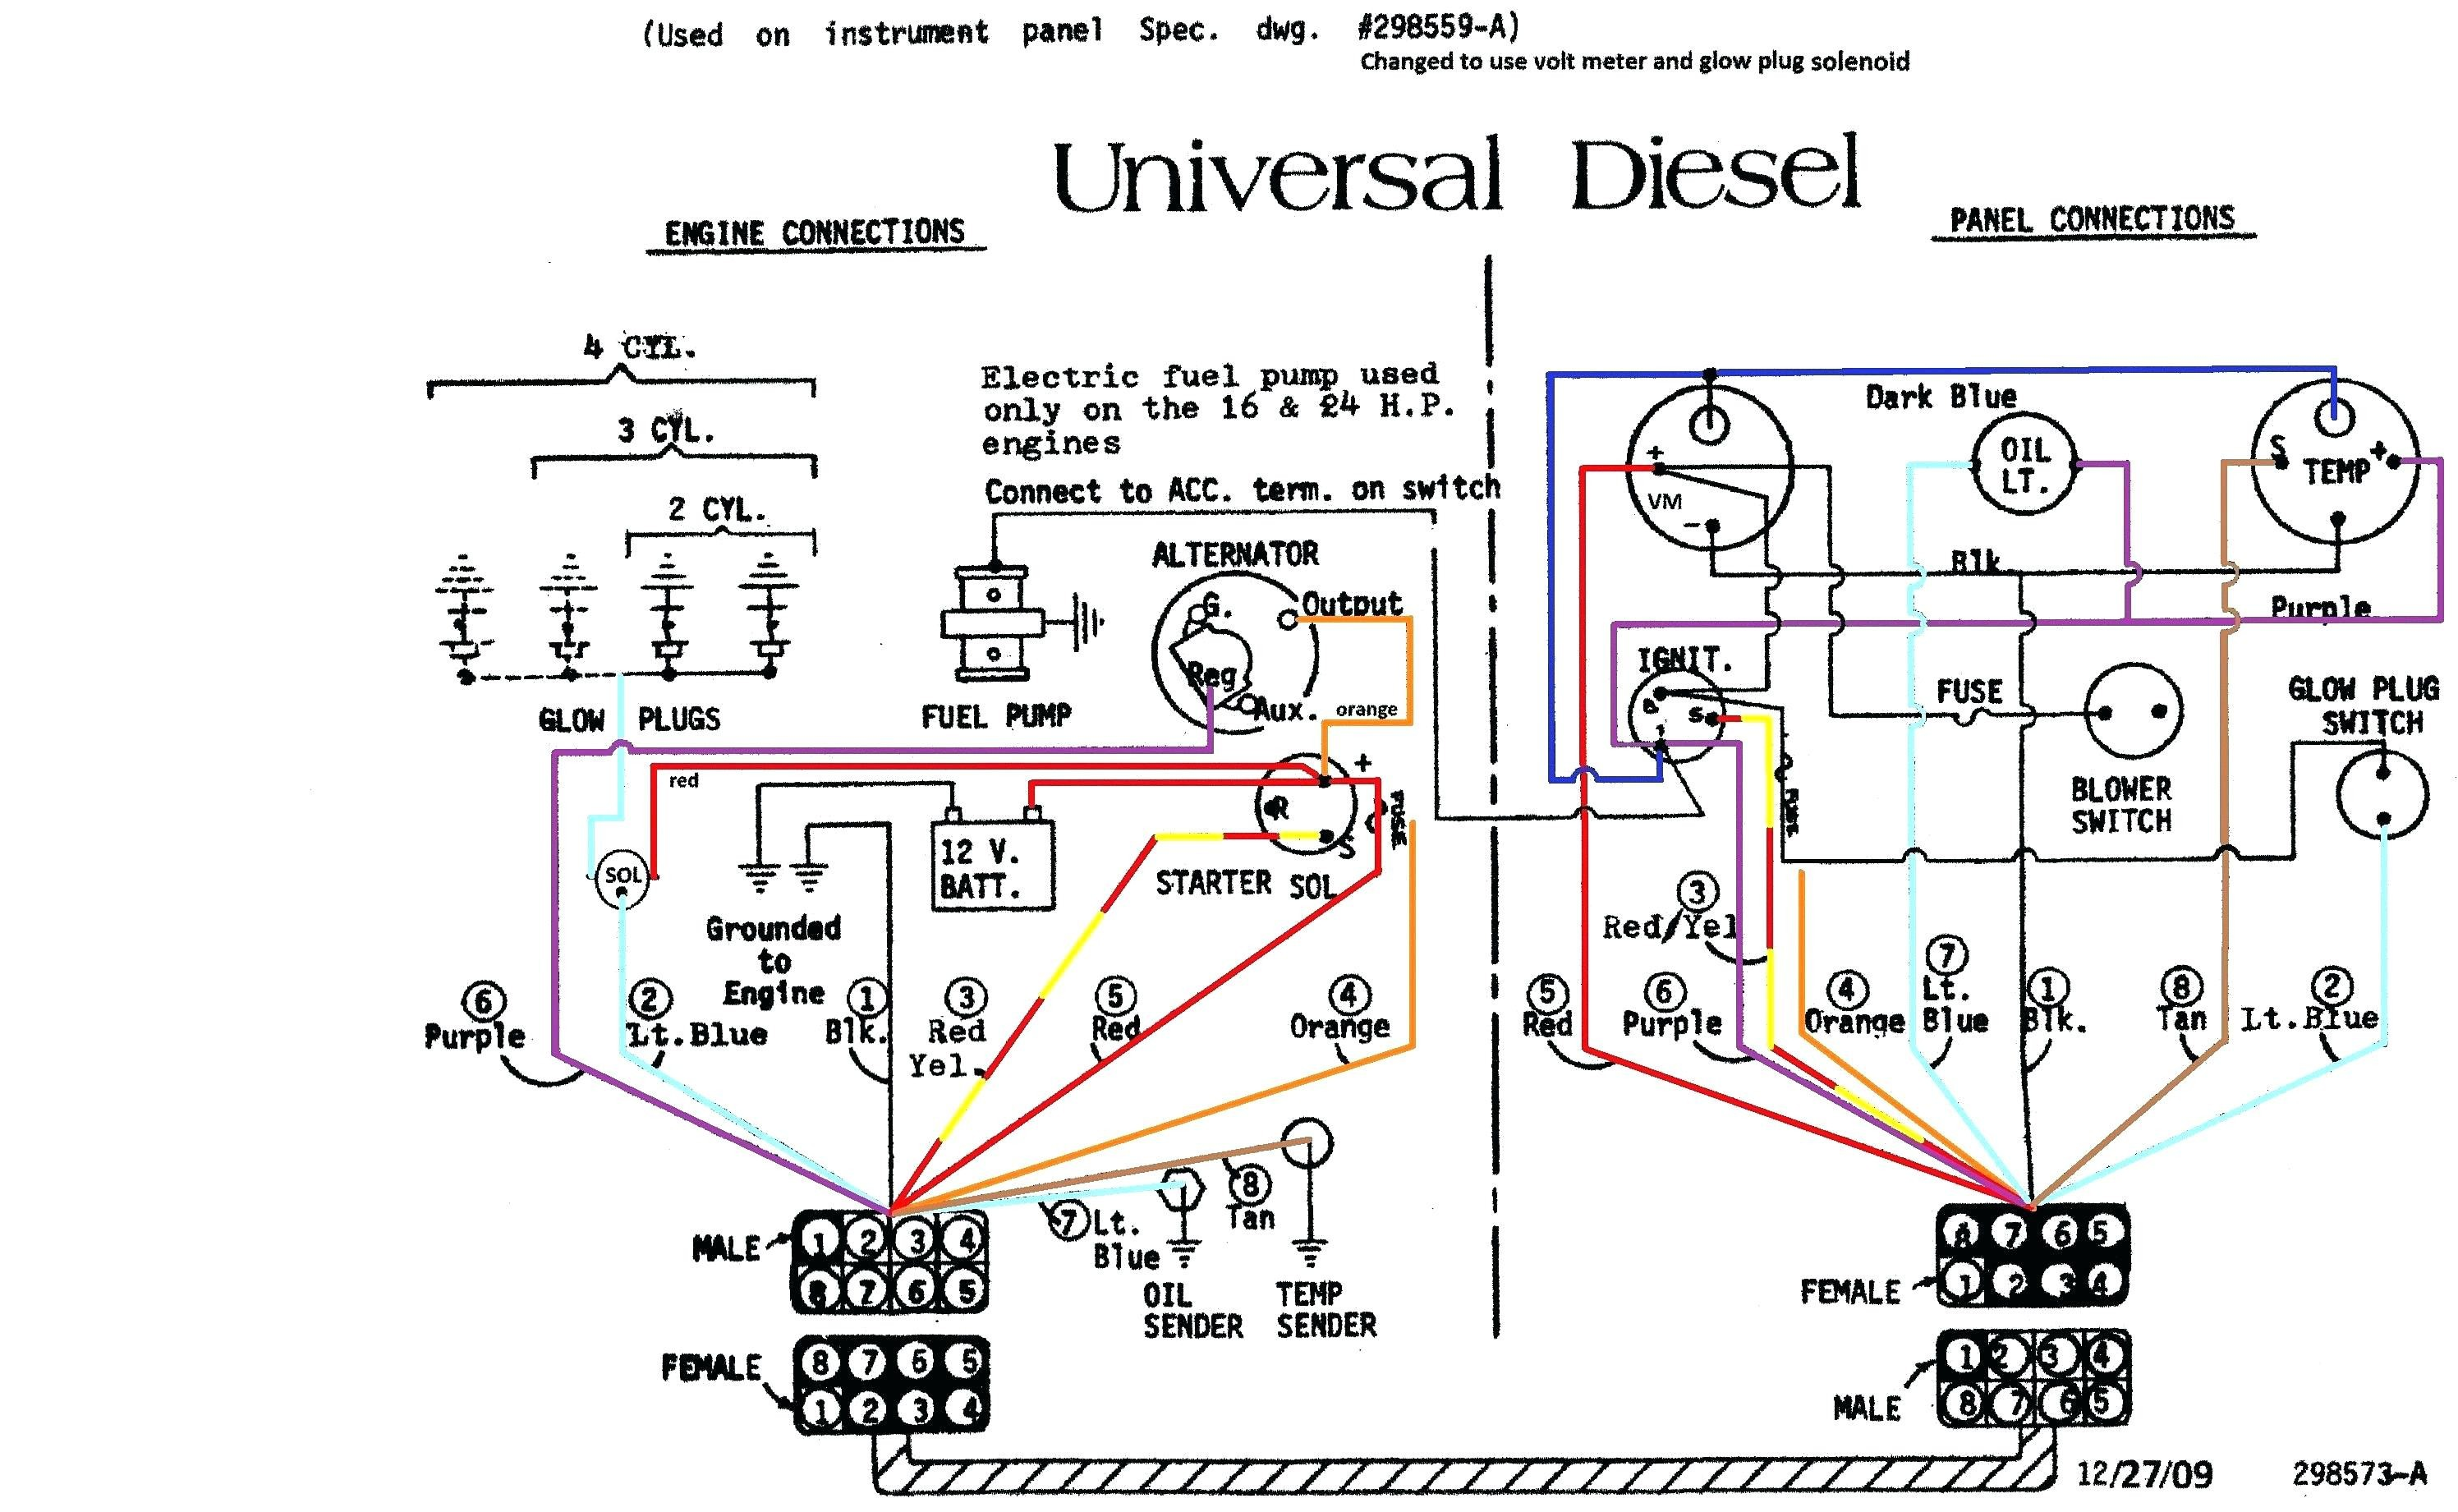 chrysler 3 8 engine diagram chrysler crossfire radio wiring diagram